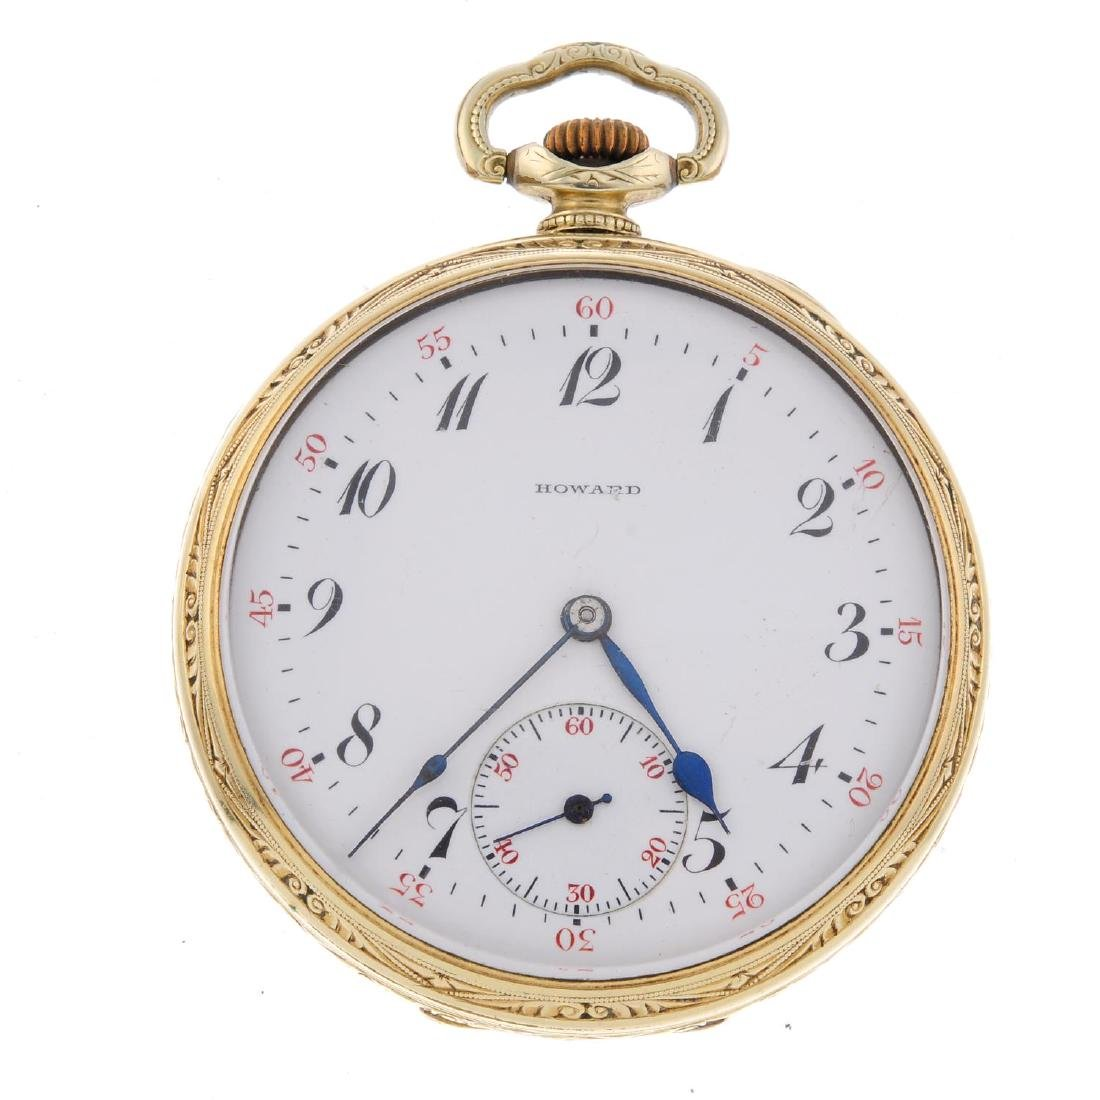 An open face pocket watch by Howard. Gold plated case.